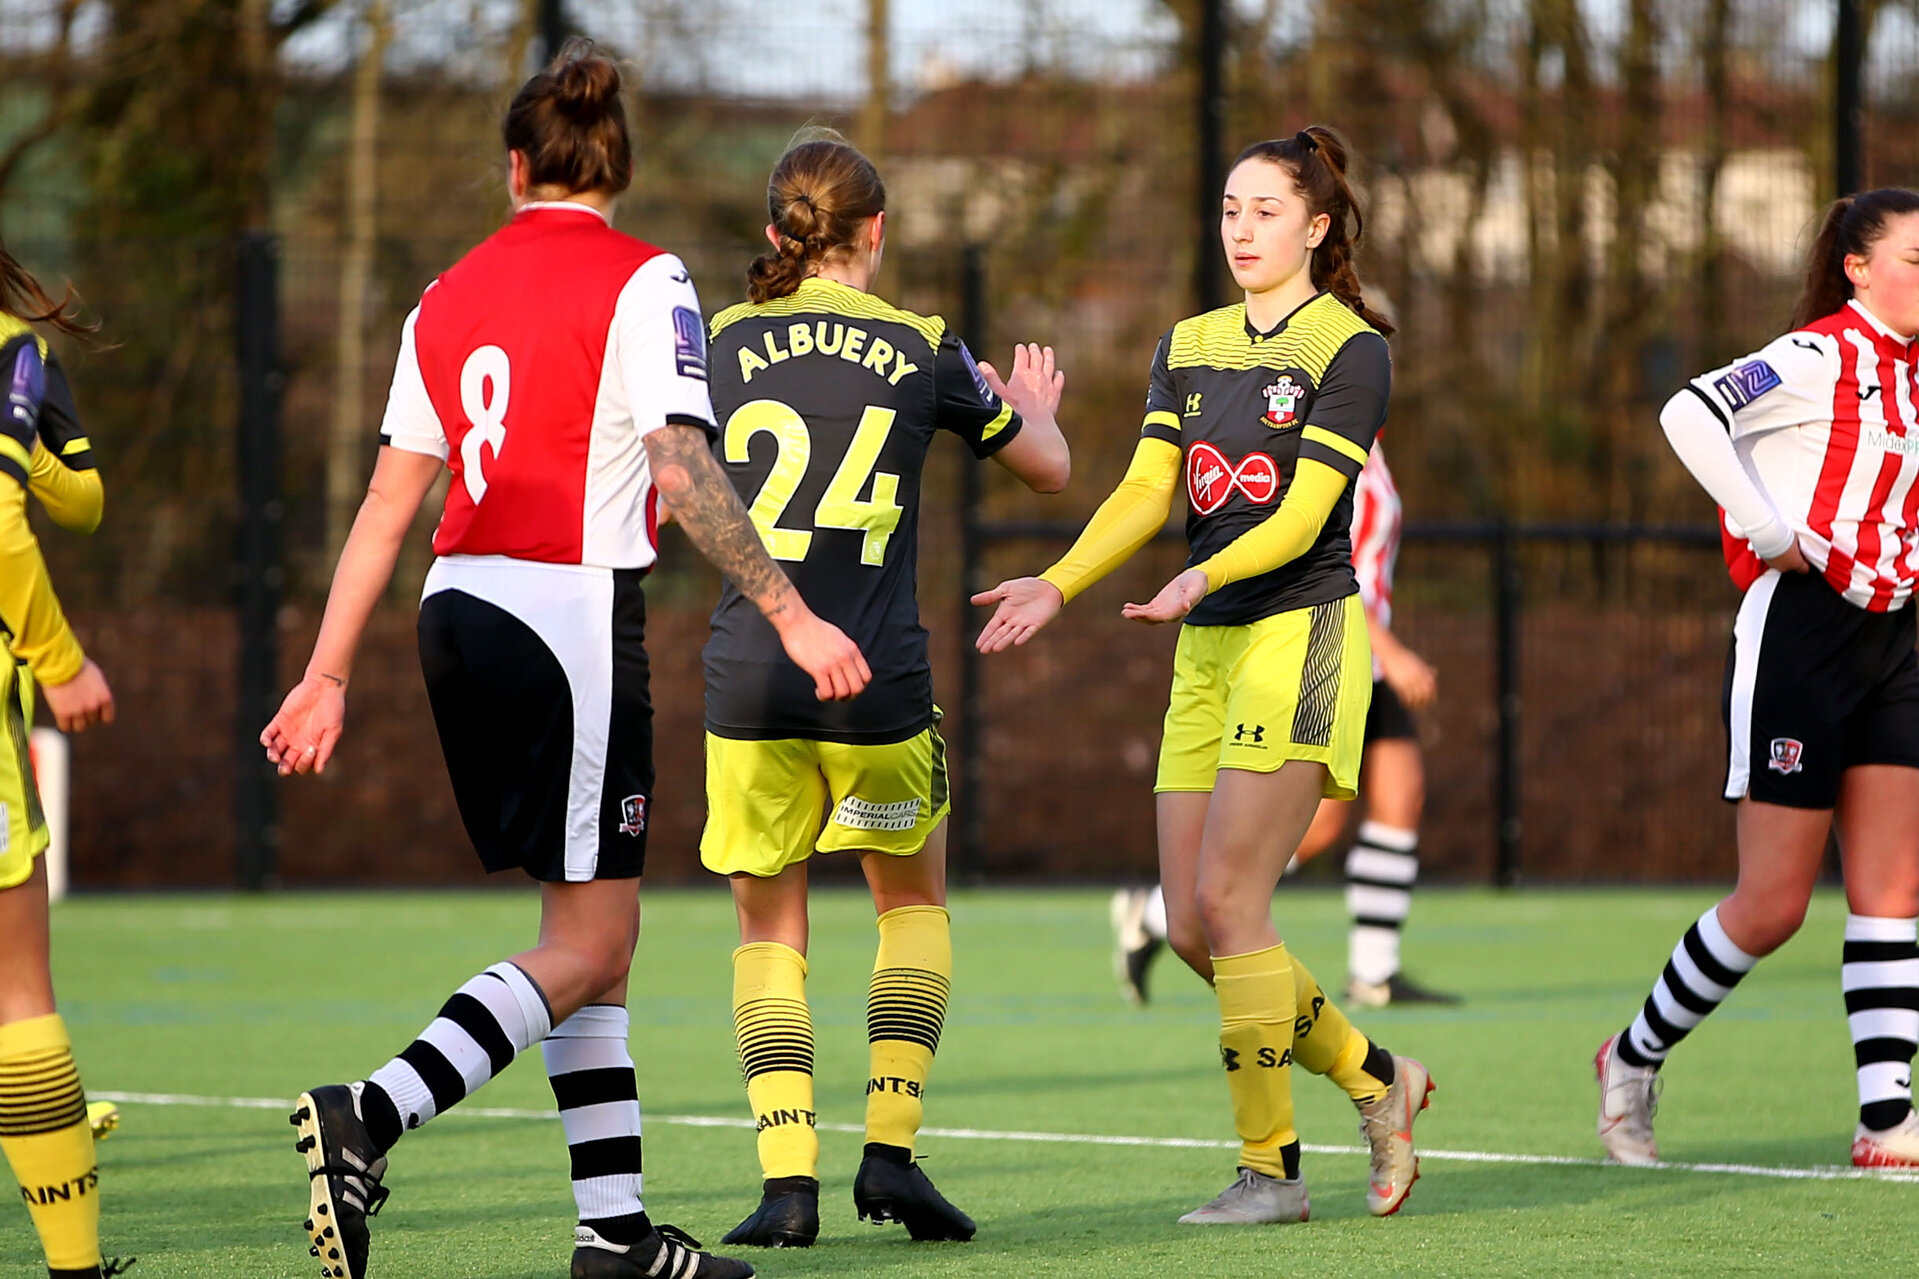 EXETER, ENGLAND - February 16: during the SRWFL at Cat and Fiddle Training Ground between Exeter and Southampton Women on February 16 2020, Exeter, England. (Photo by Isabelle Field/Southampton FC via Getty Images)